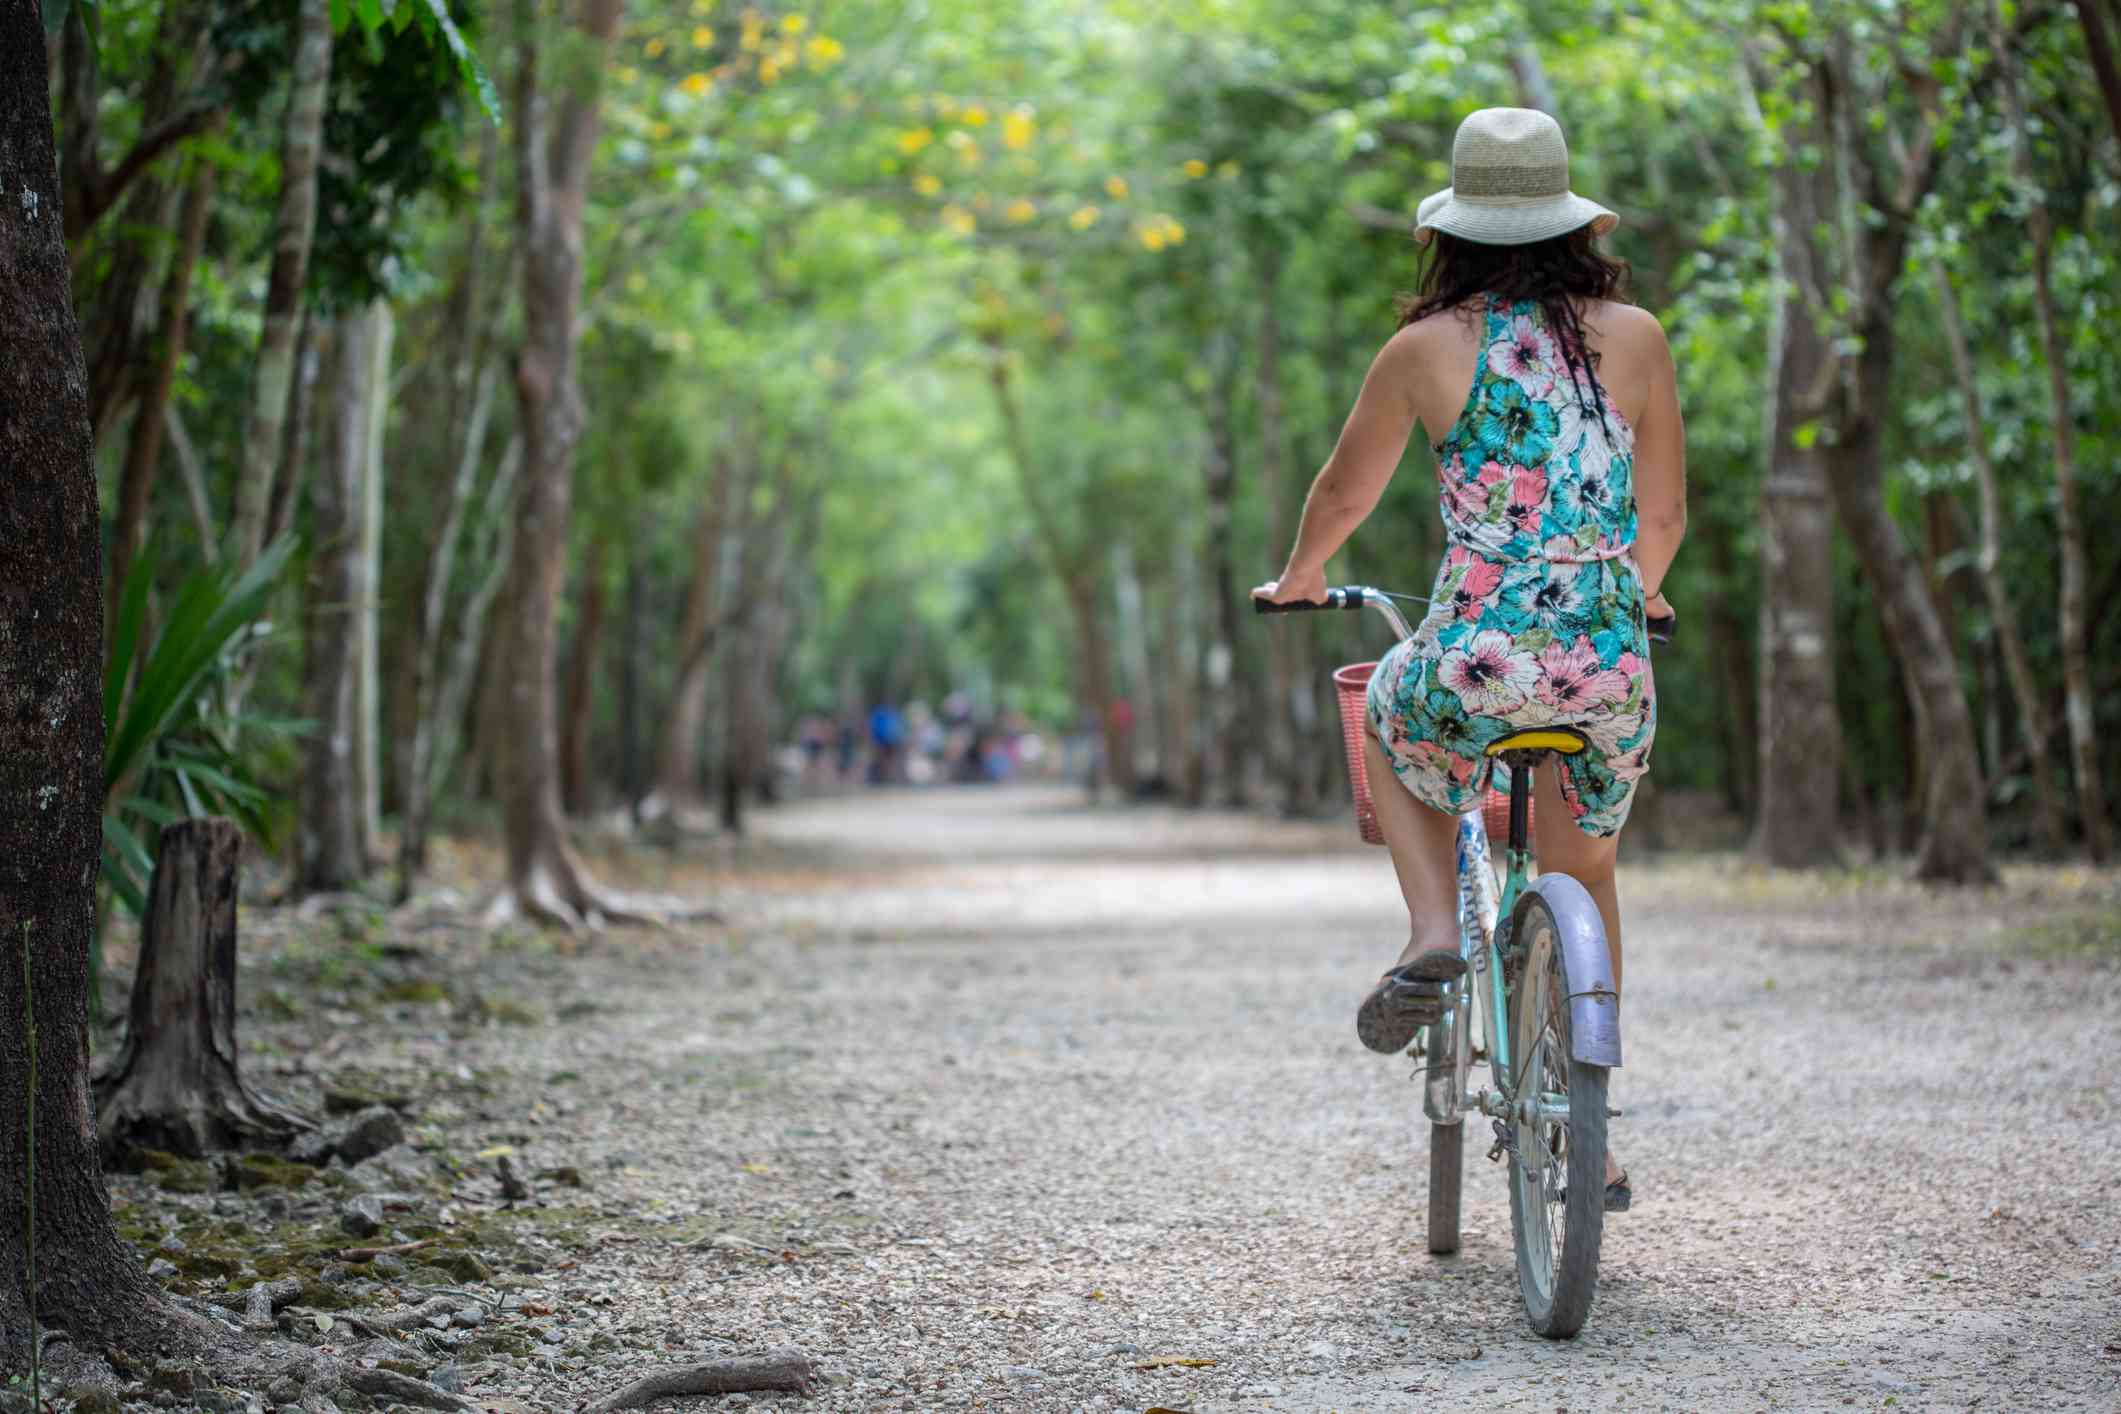 Woman Riding a Bicycle near Tulum, Mexico